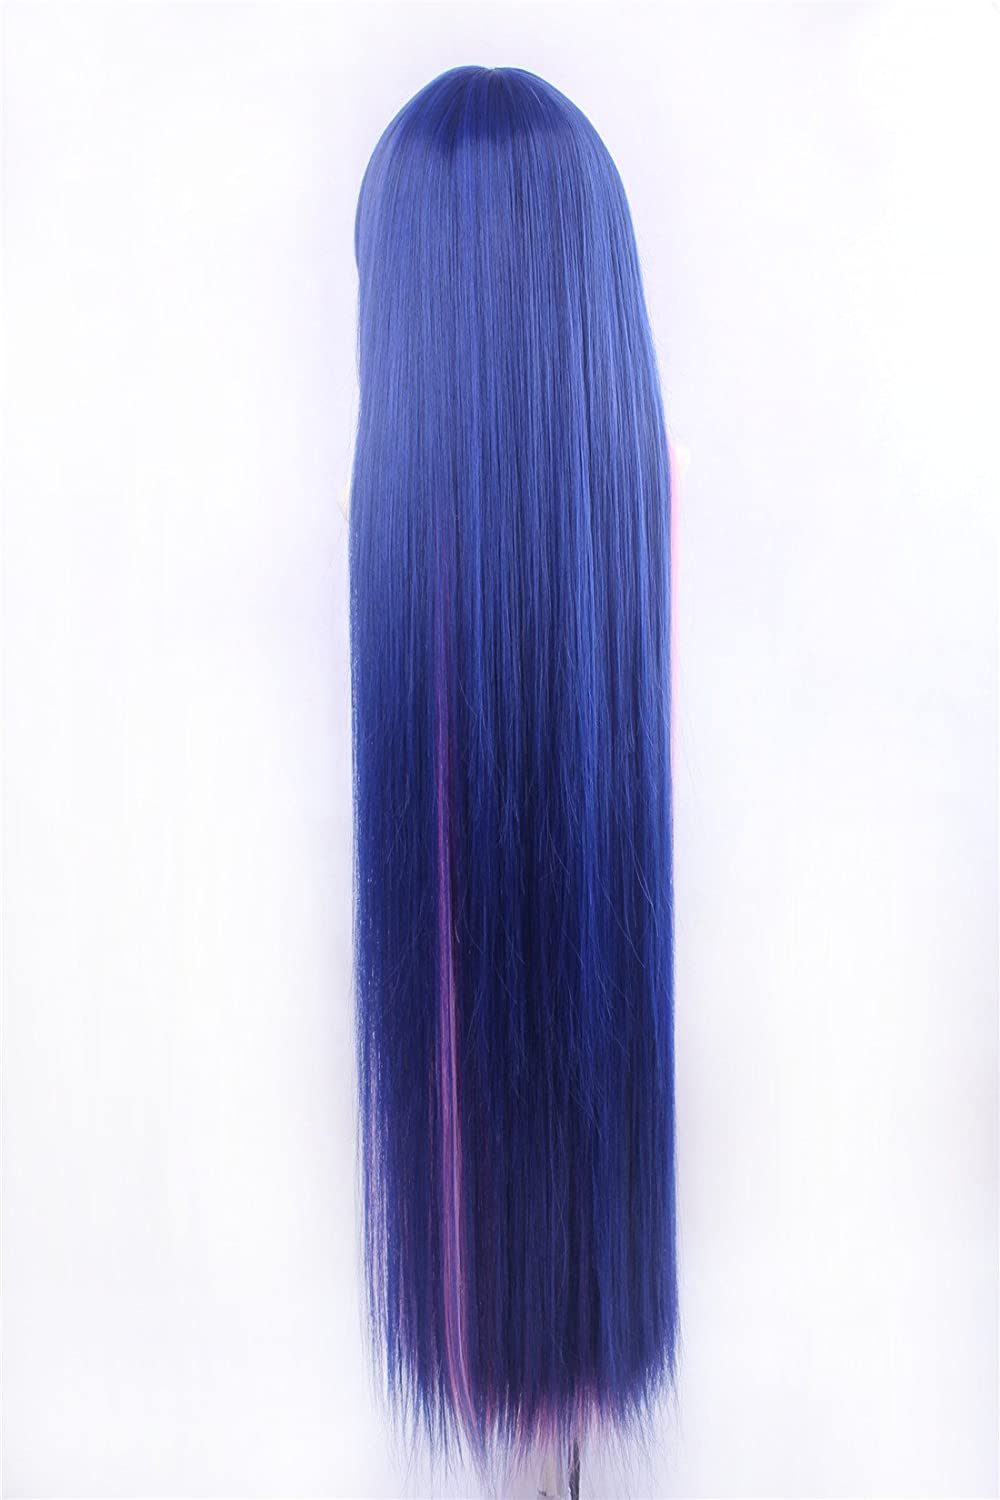 Amazon.com: Icoser Stoching Anime Cosplay Party Wigs Long Synthetic Hair 110cm: Beauty